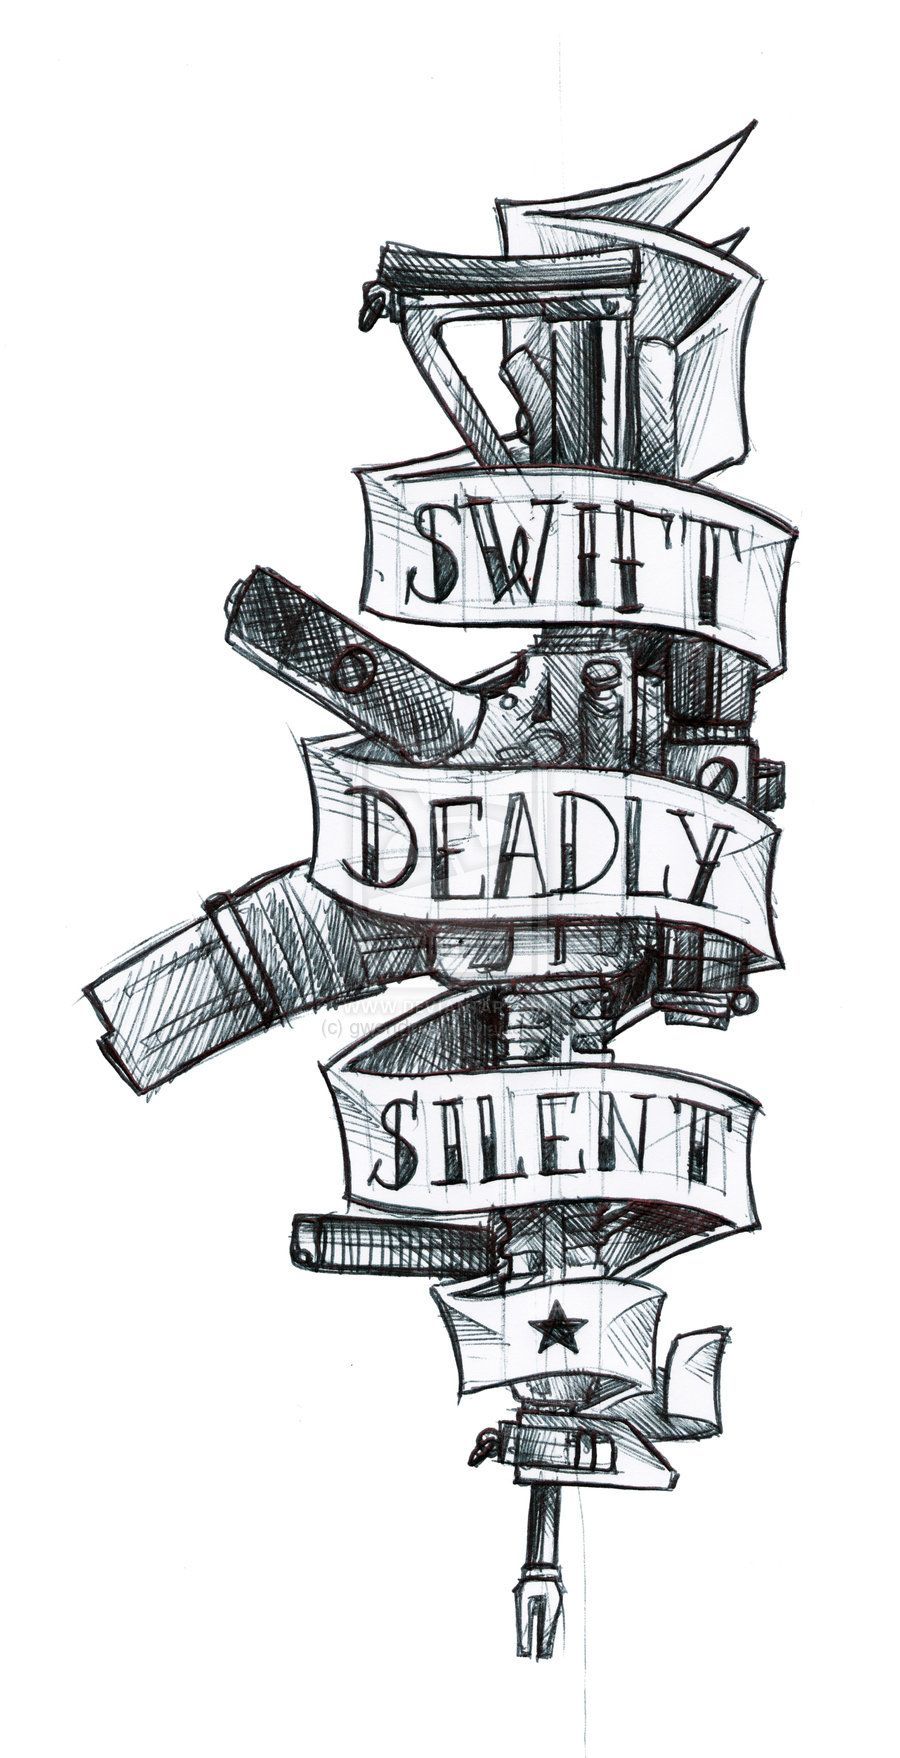 Swift deadly silent by SteveGolliotVillers.deviantart.com on ...